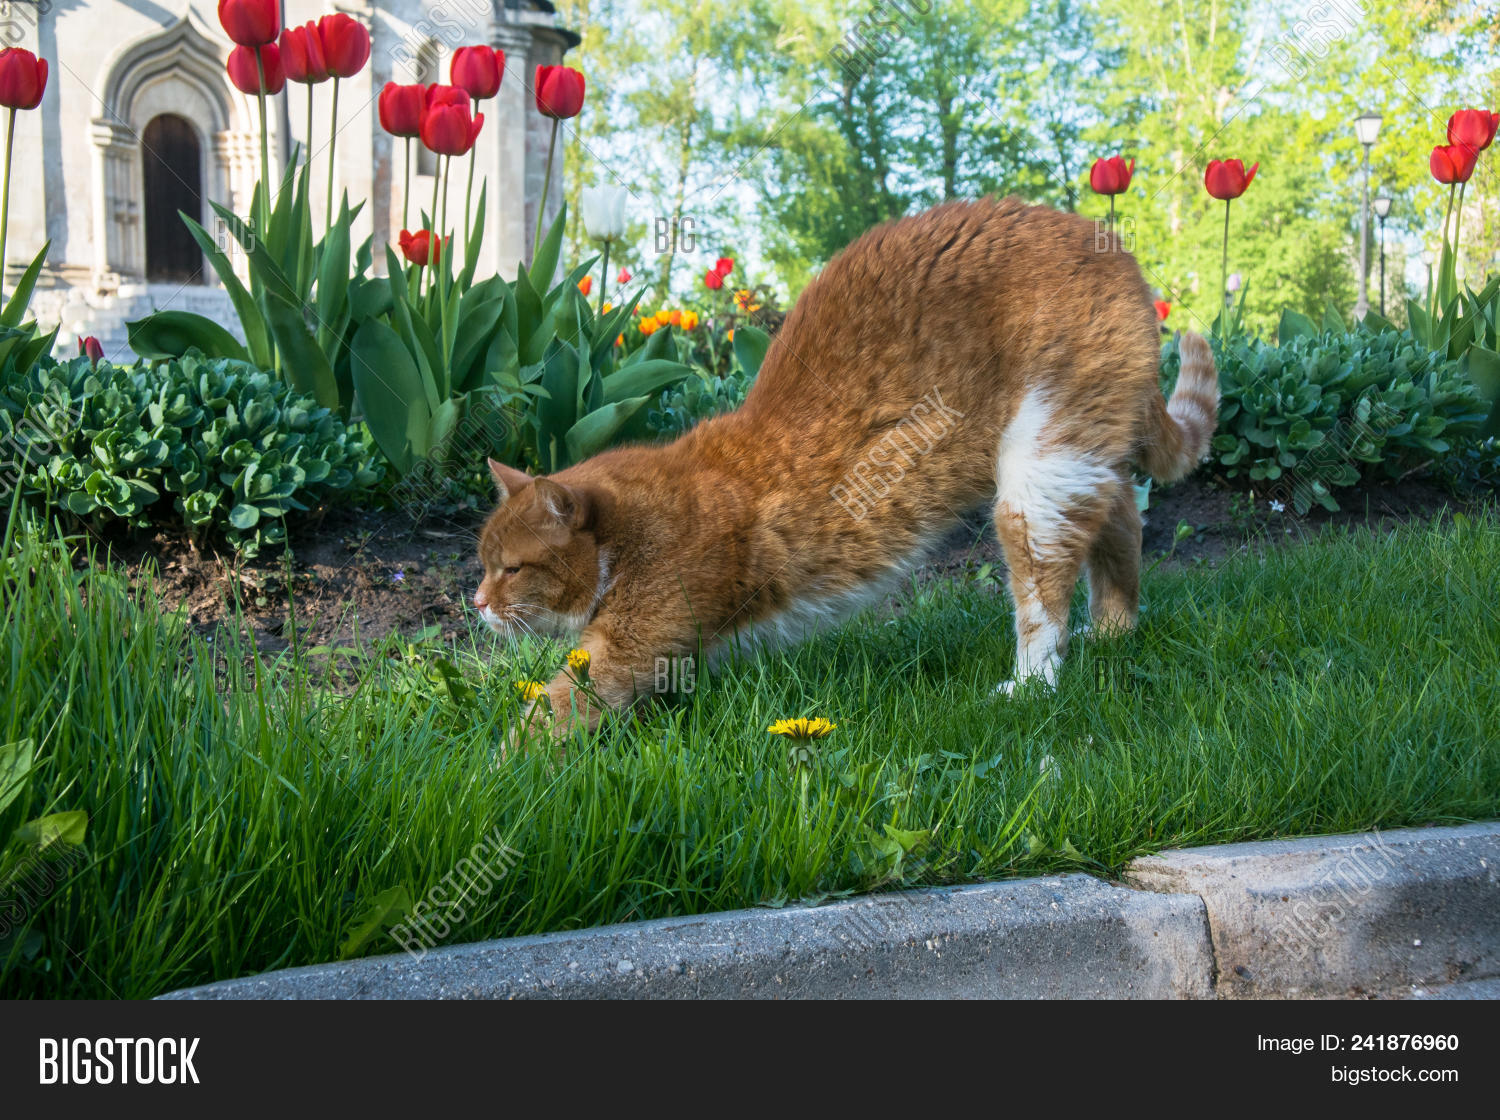 A Lazy Red Cat Relaxing In Flower Bed Between Bright Blooming Tulips